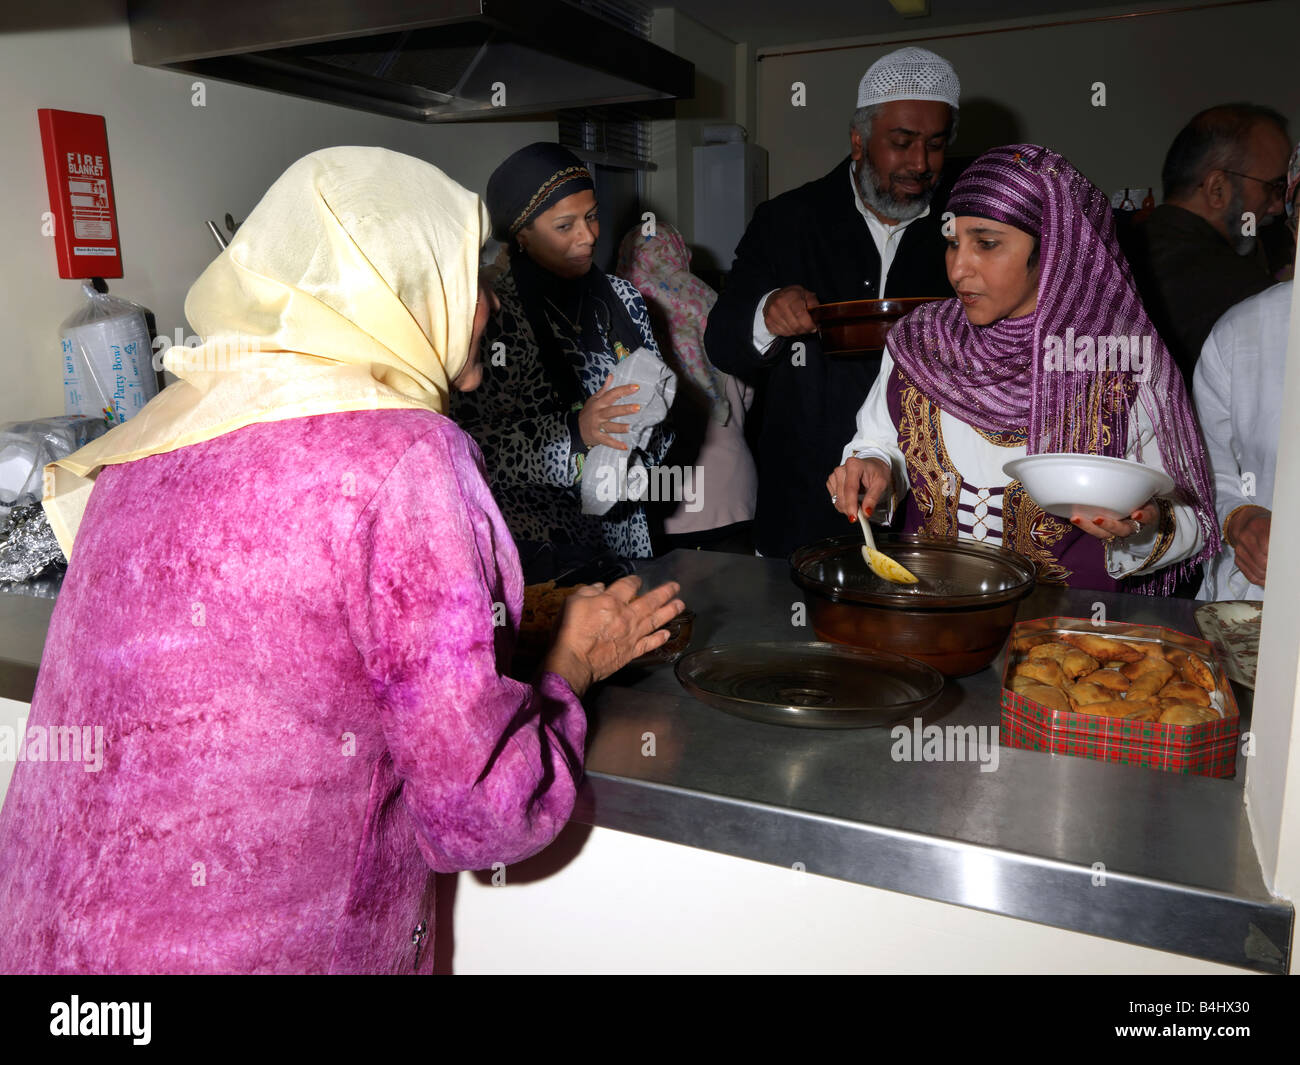 Eid Party at St Josephs Church Hall Epsom Surrey Women Serving Food which They Have Cooked and Brought From Home - Stock Image